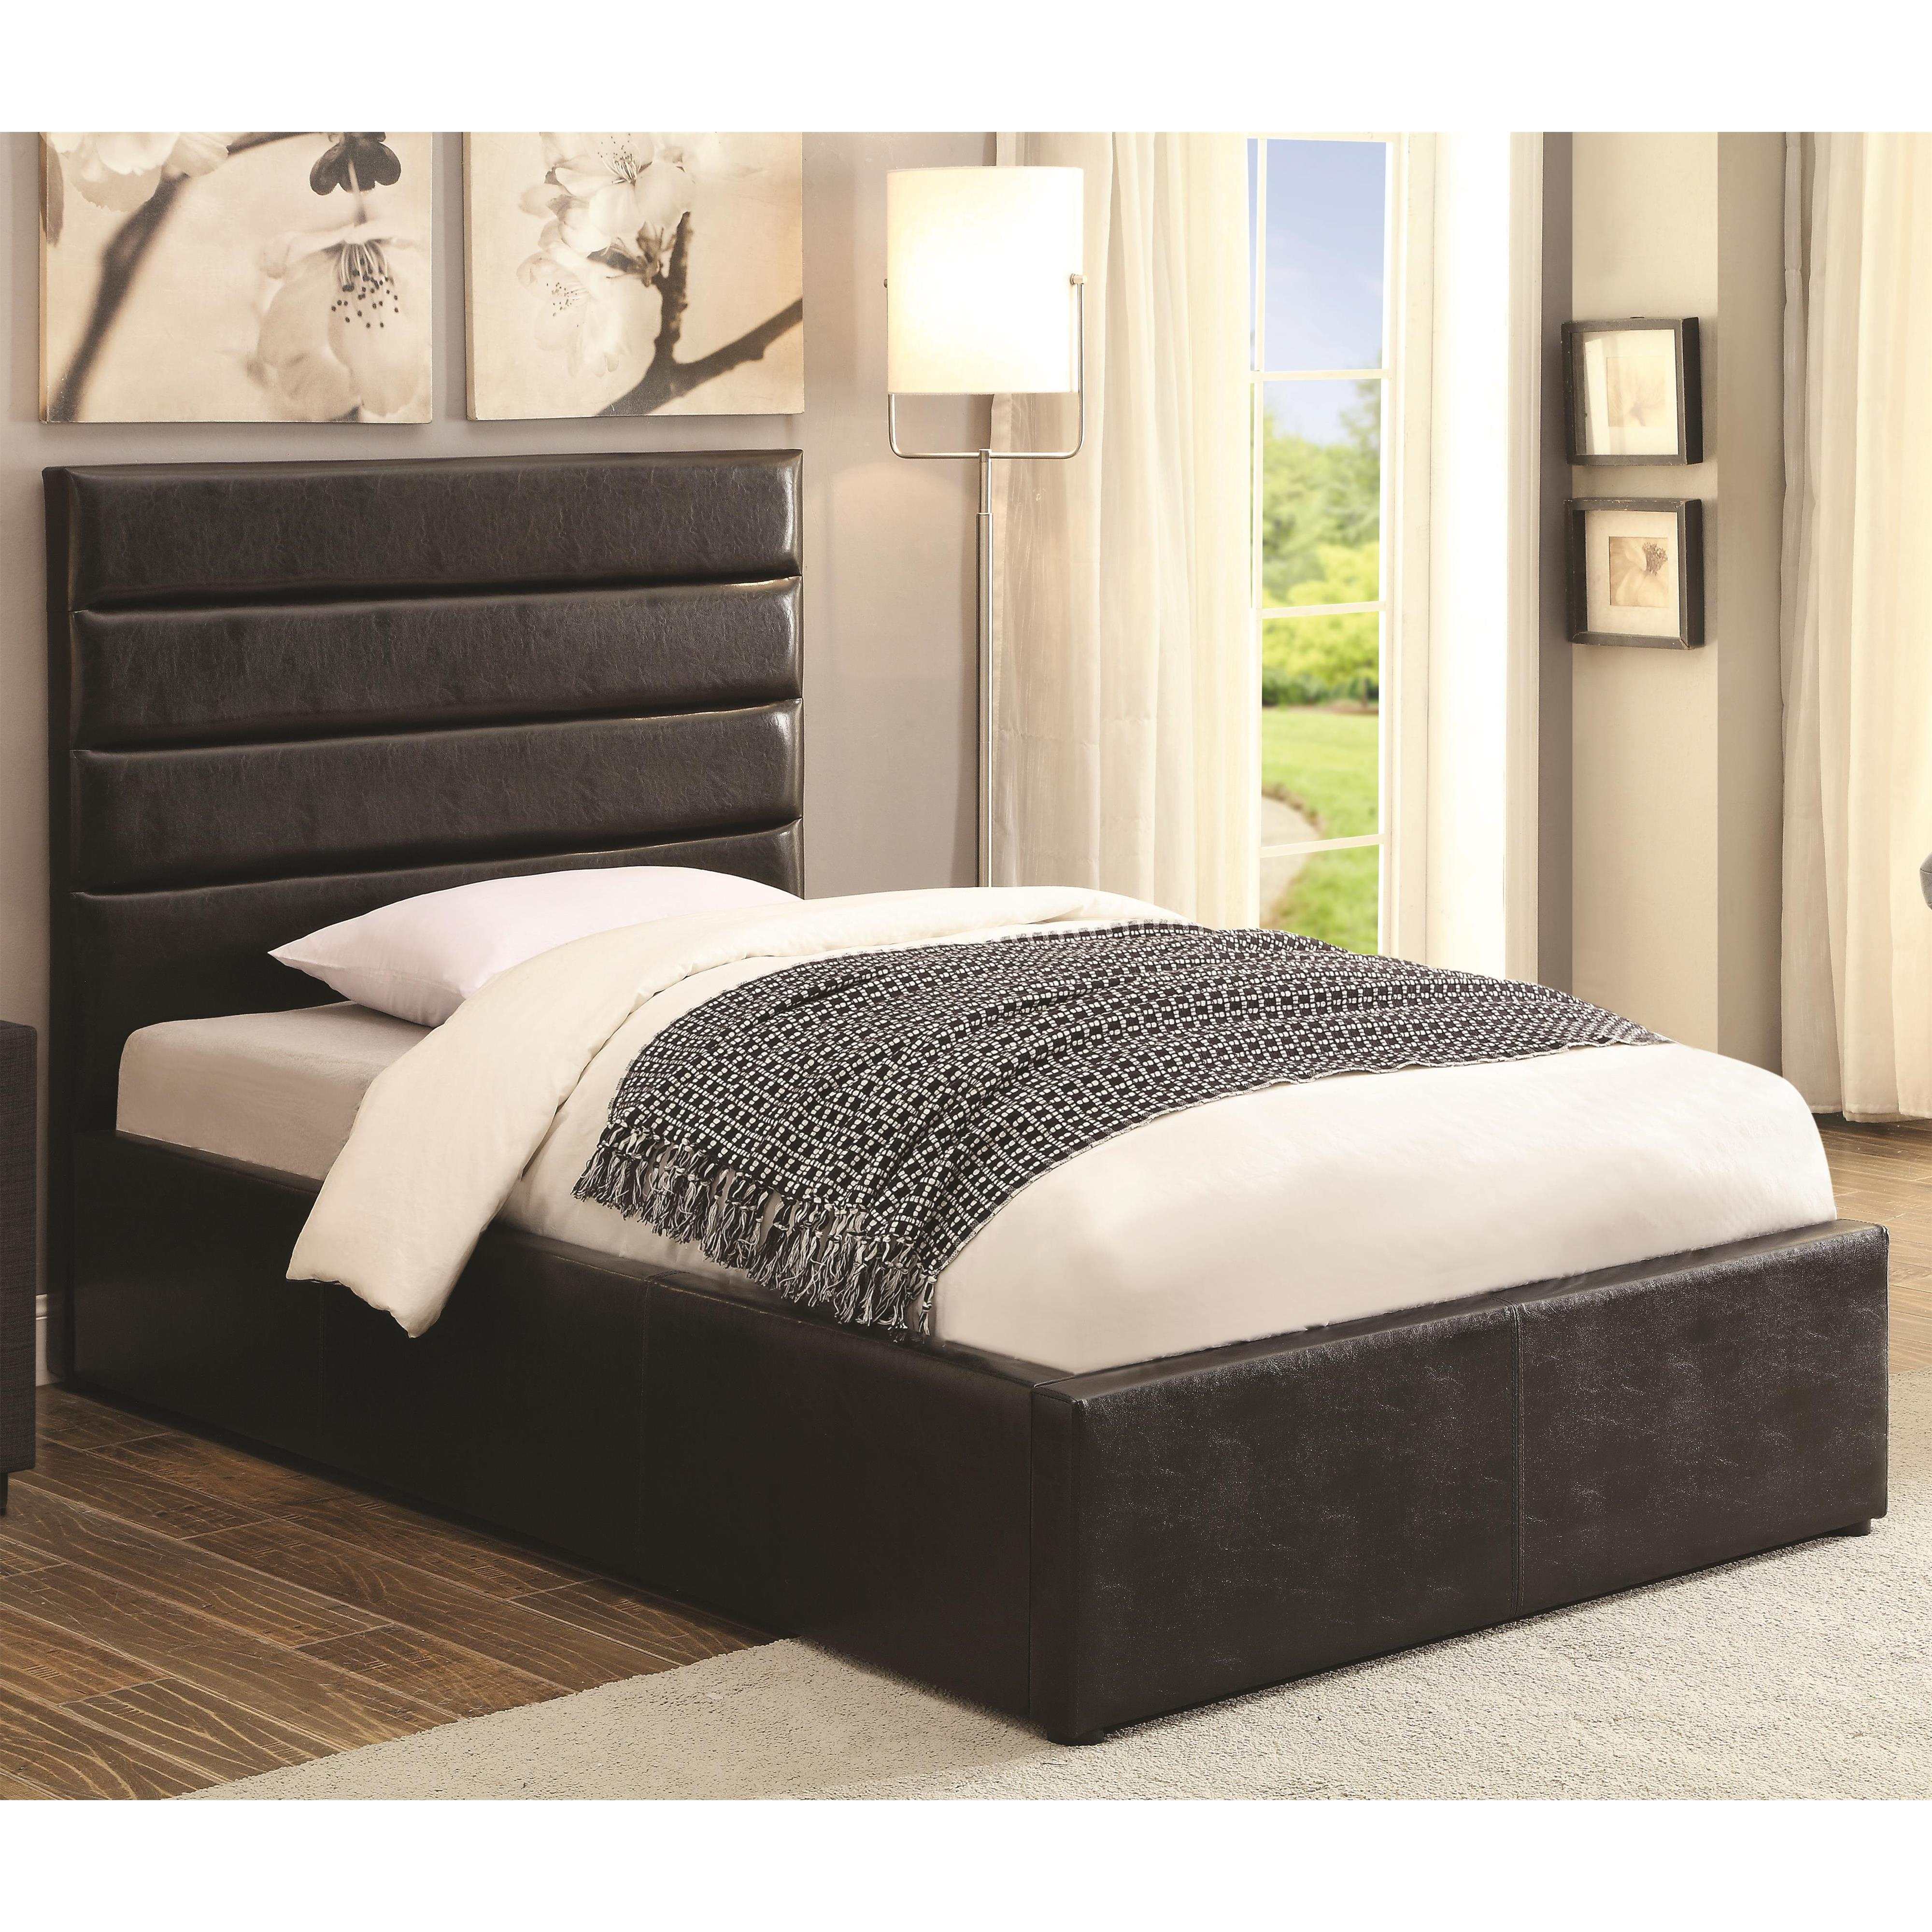 Riverbend Full Bed by Coaster at Northeast Factory Direct